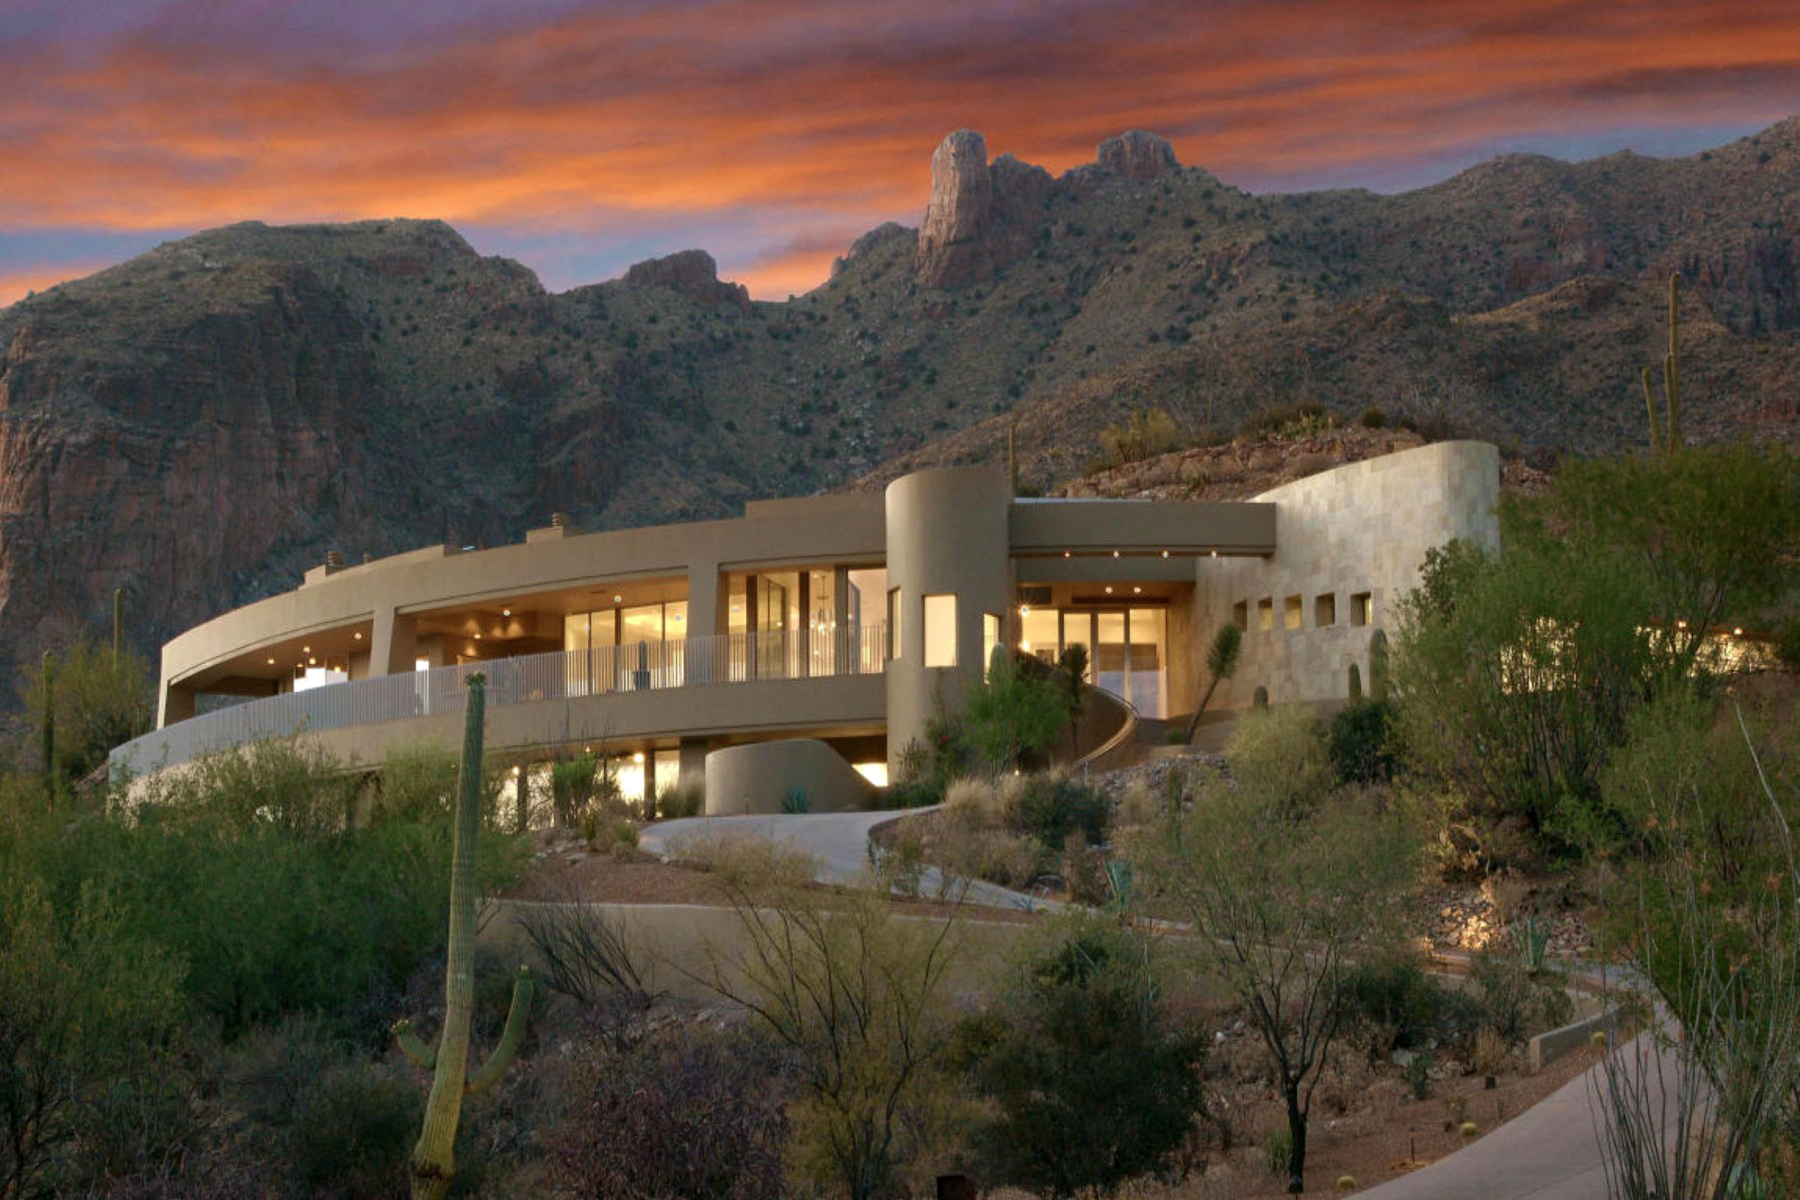 Casa Unifamiliar por un Venta en Visually Stunning Contemporary Masterpiece with Spectacular Views 7164 N Mercer Spring Tucson, Arizona 85718 Estados Unidos